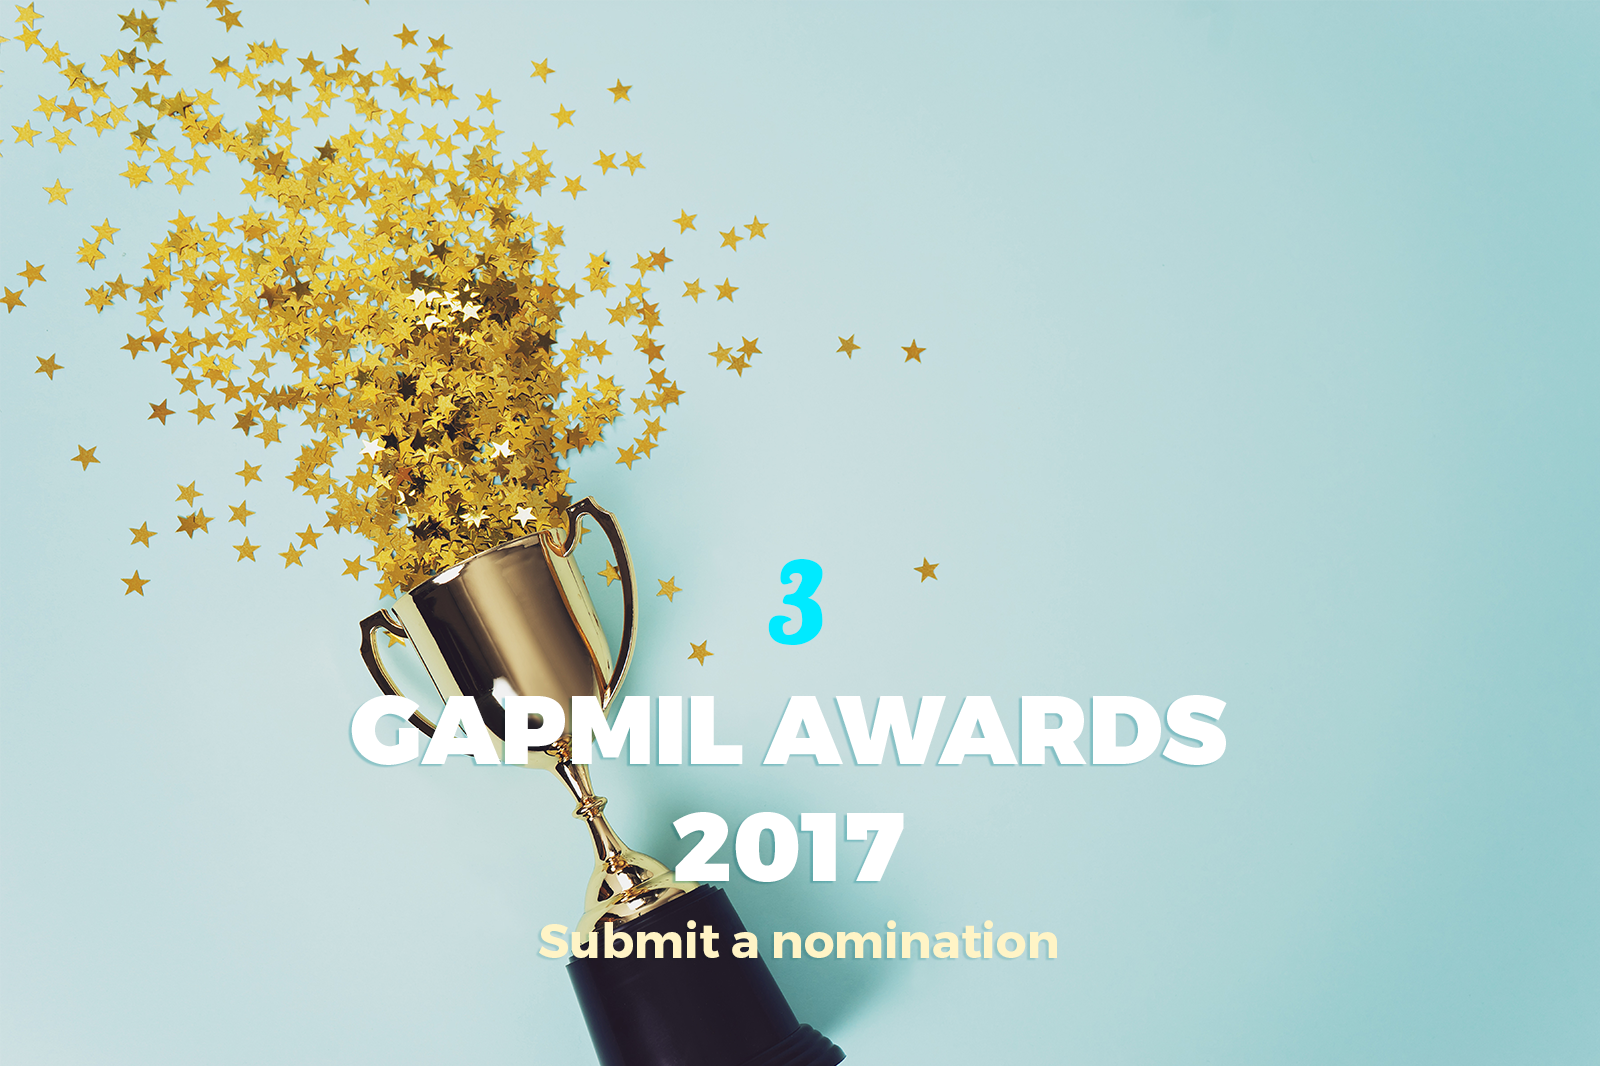 GAPMIL Global Media and International Literacy Awards 2017